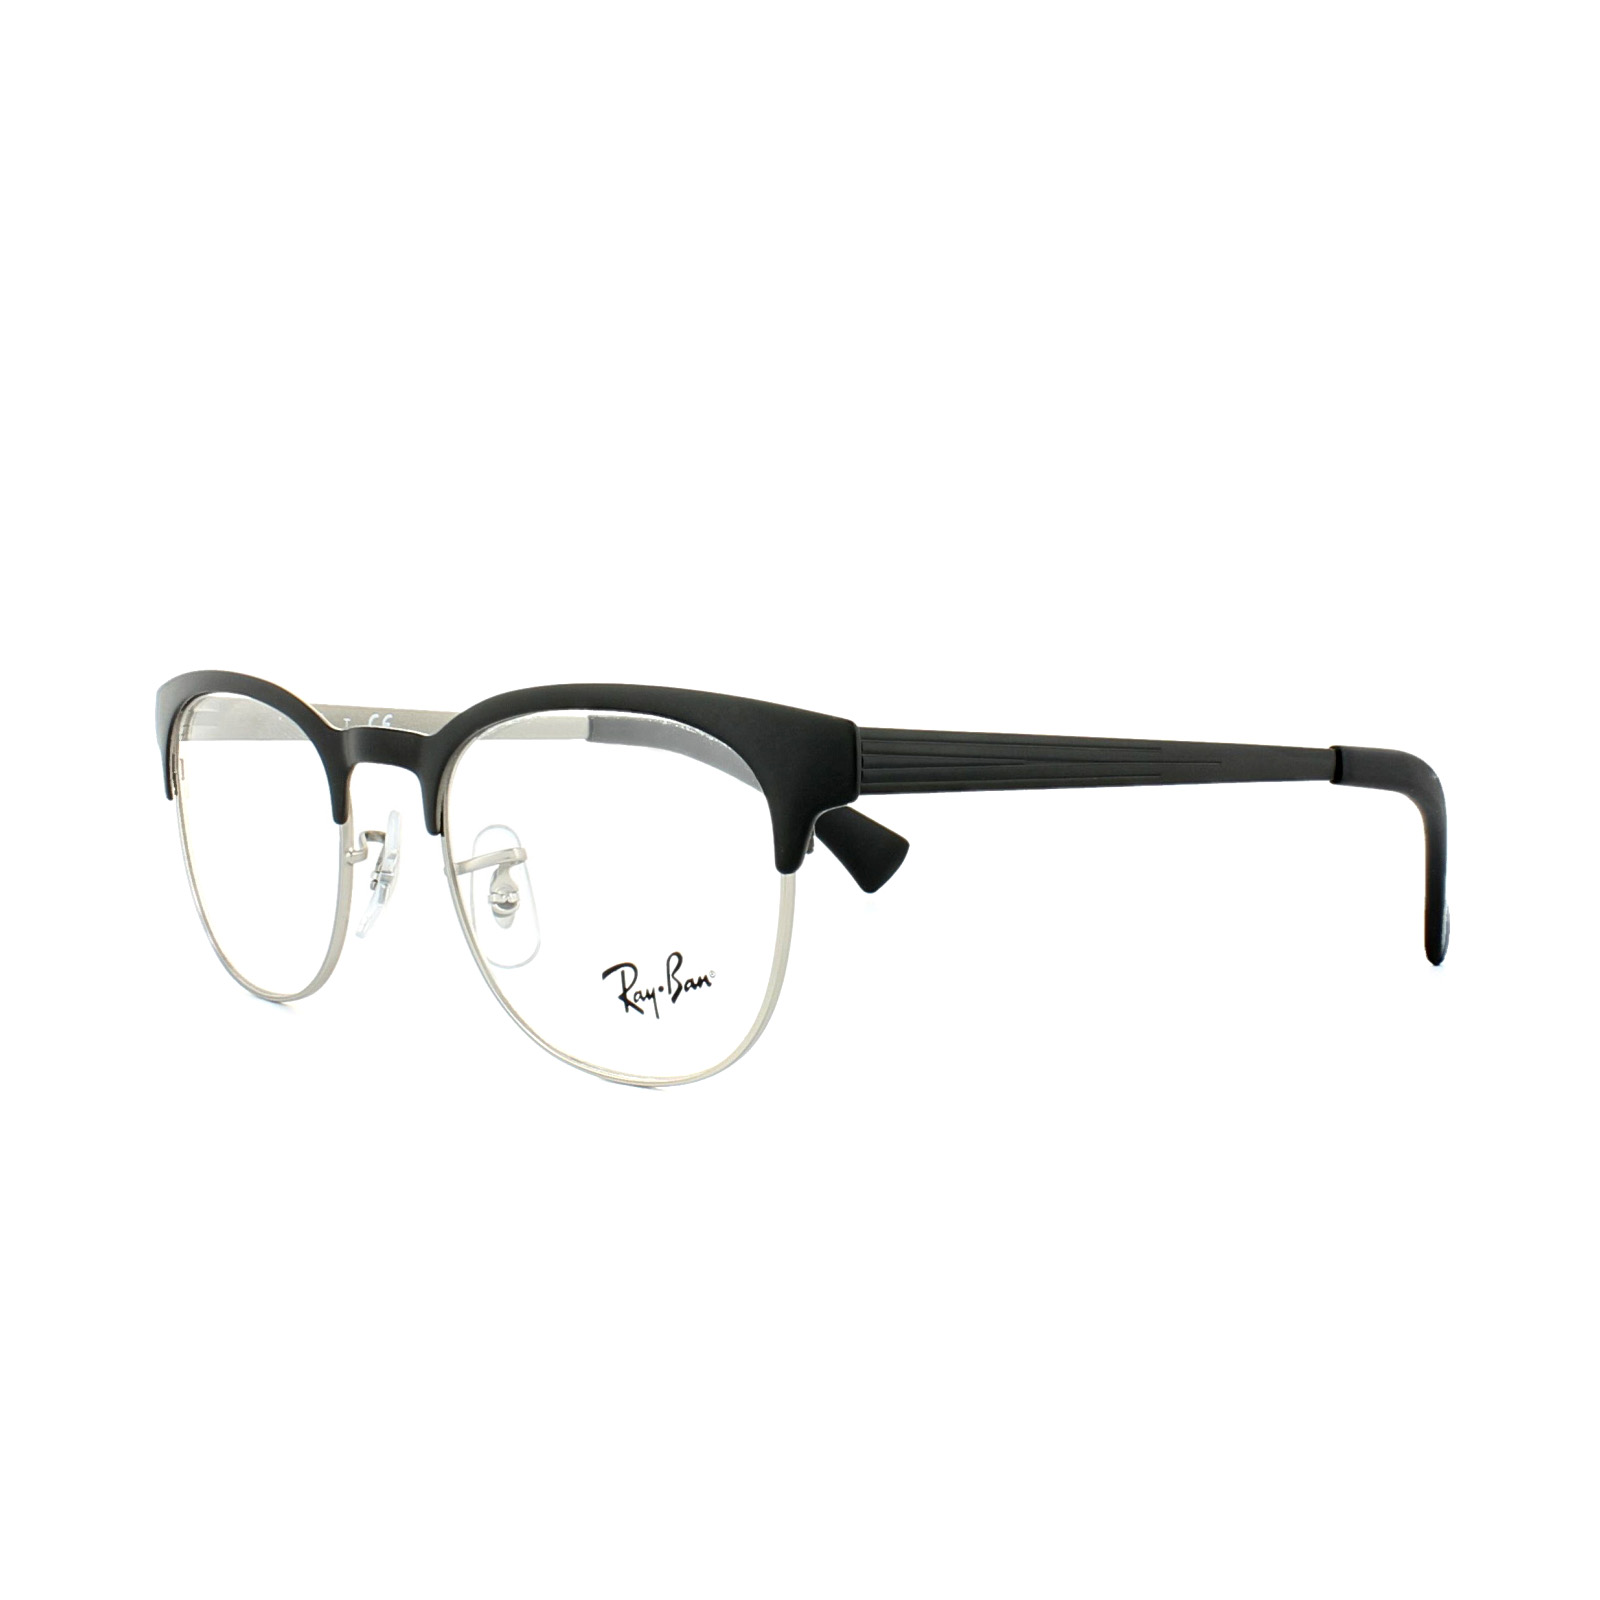 e3aca05763 Sentinel Ray-Ban Glasses Frames 6317 2832 Top Black on Matte Silver Mens  Womens 49mm